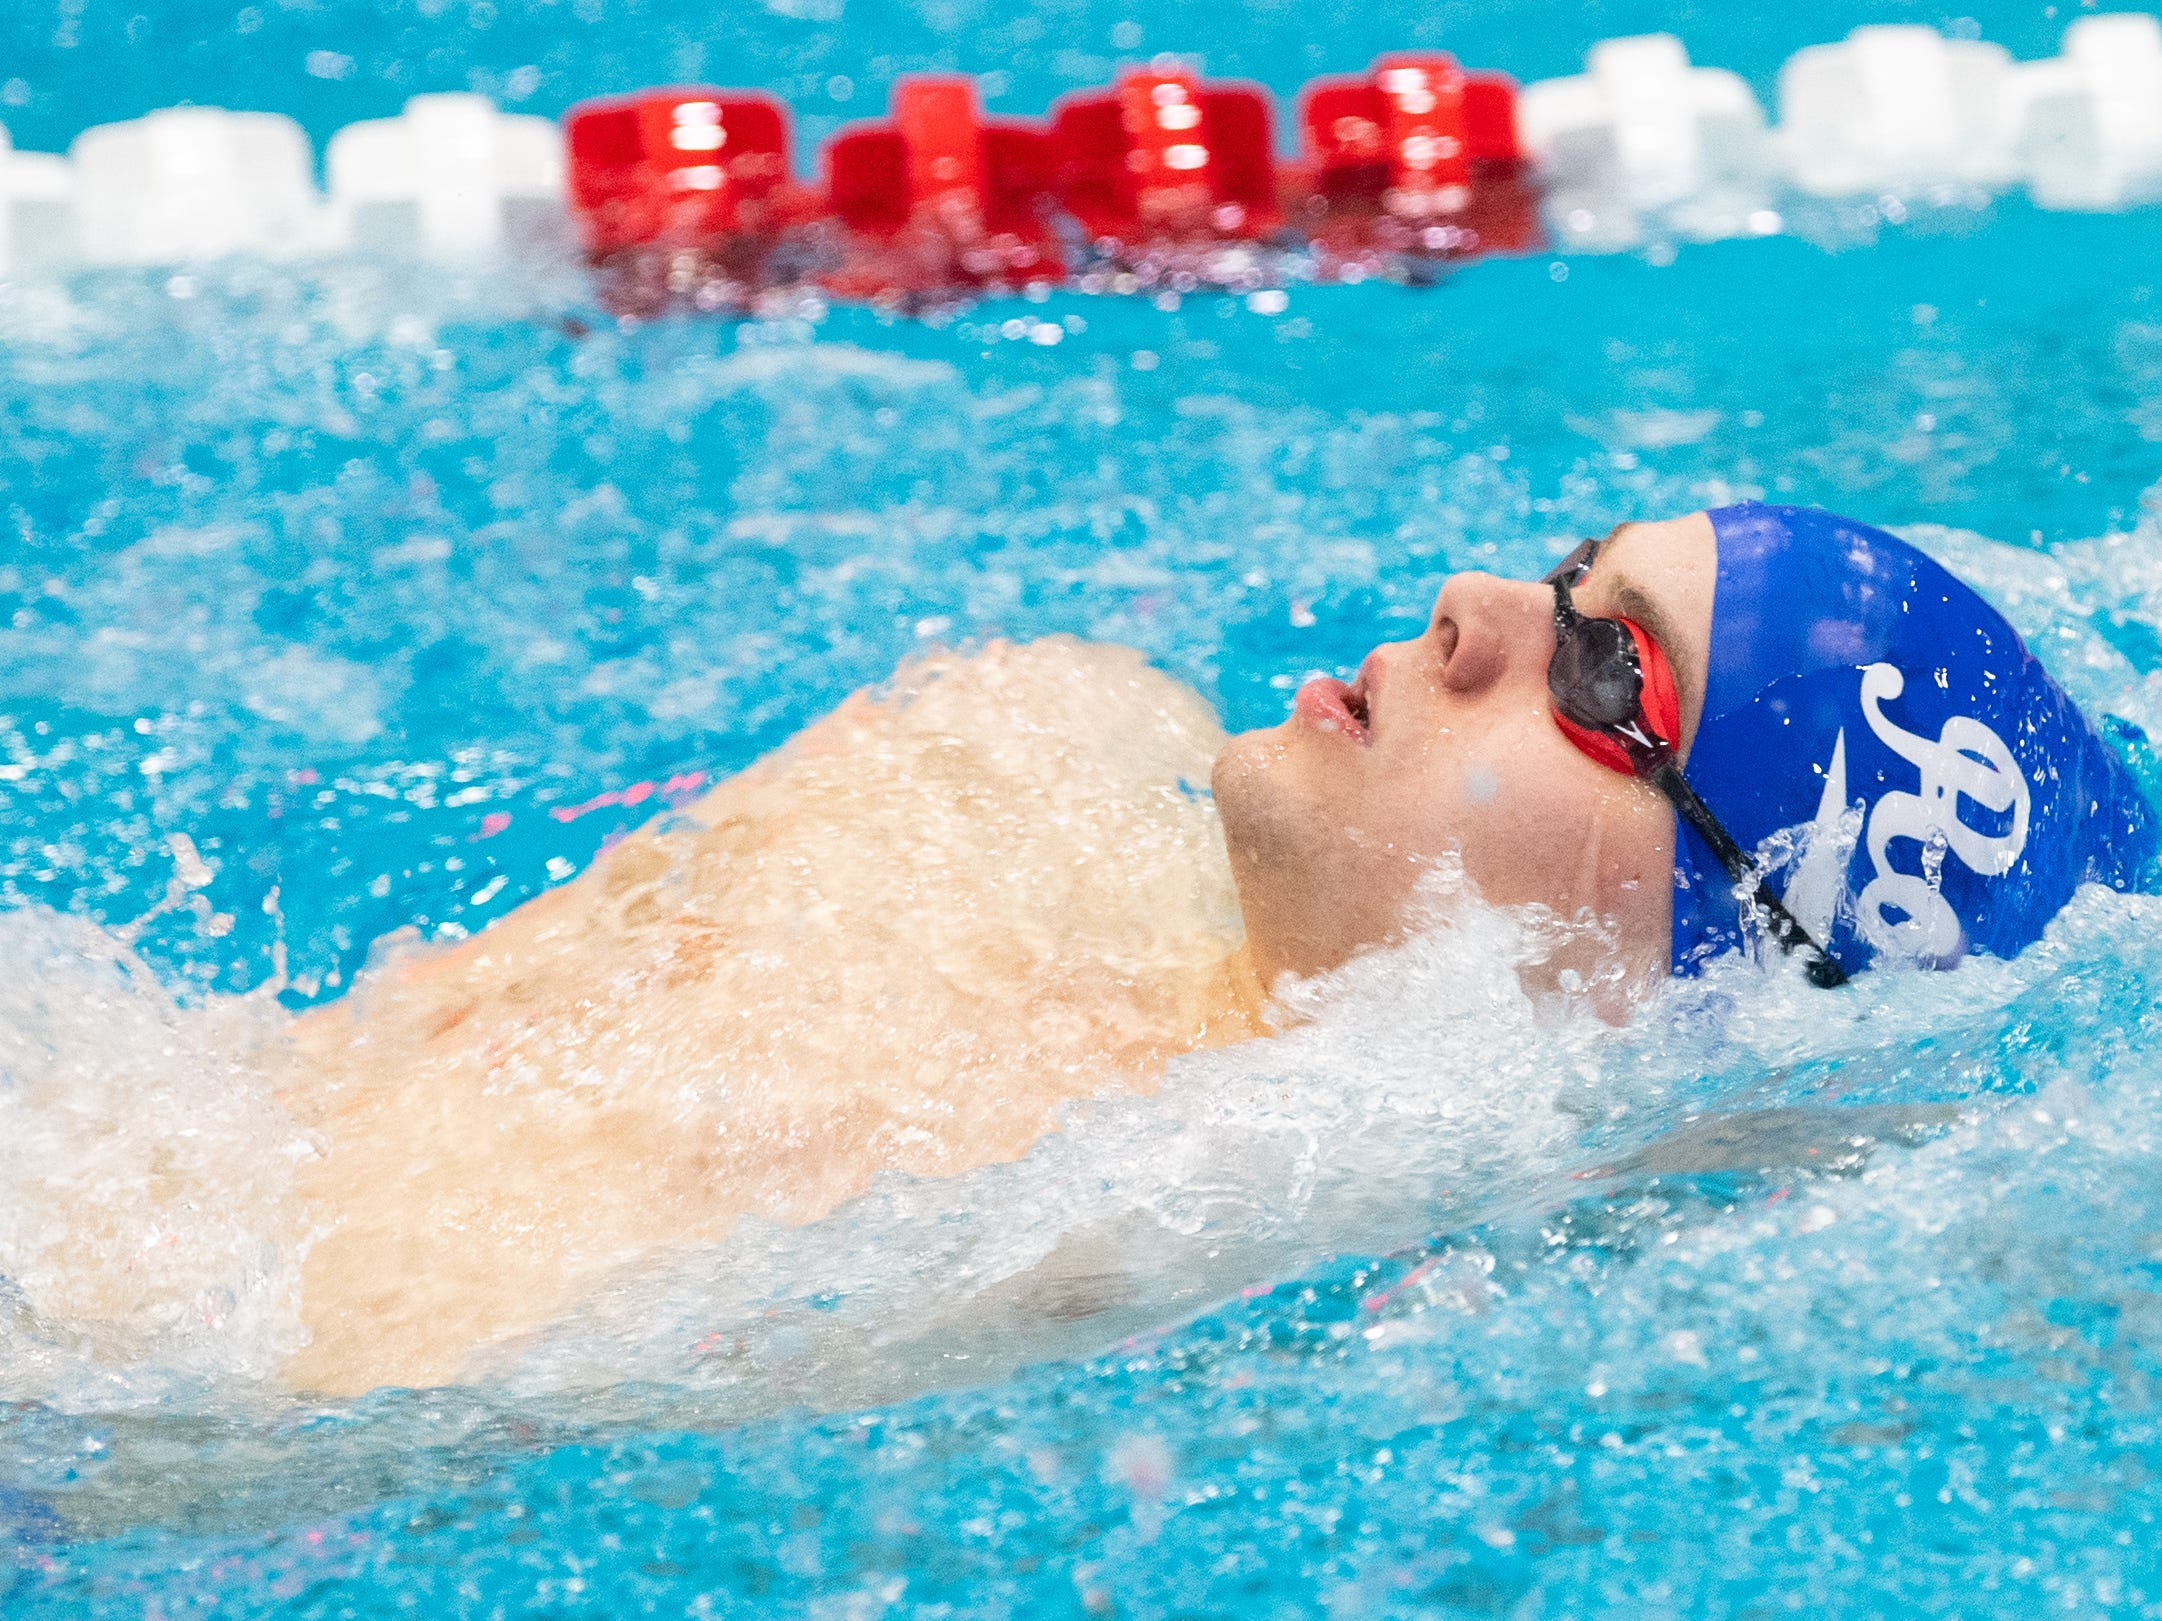 Josiah Kline of Spring Grove competes in the Boys 200 Yard IM during the PIAA District 3 Boys AAA Championship, March 1, 2019 at Cumberland Valley High School.